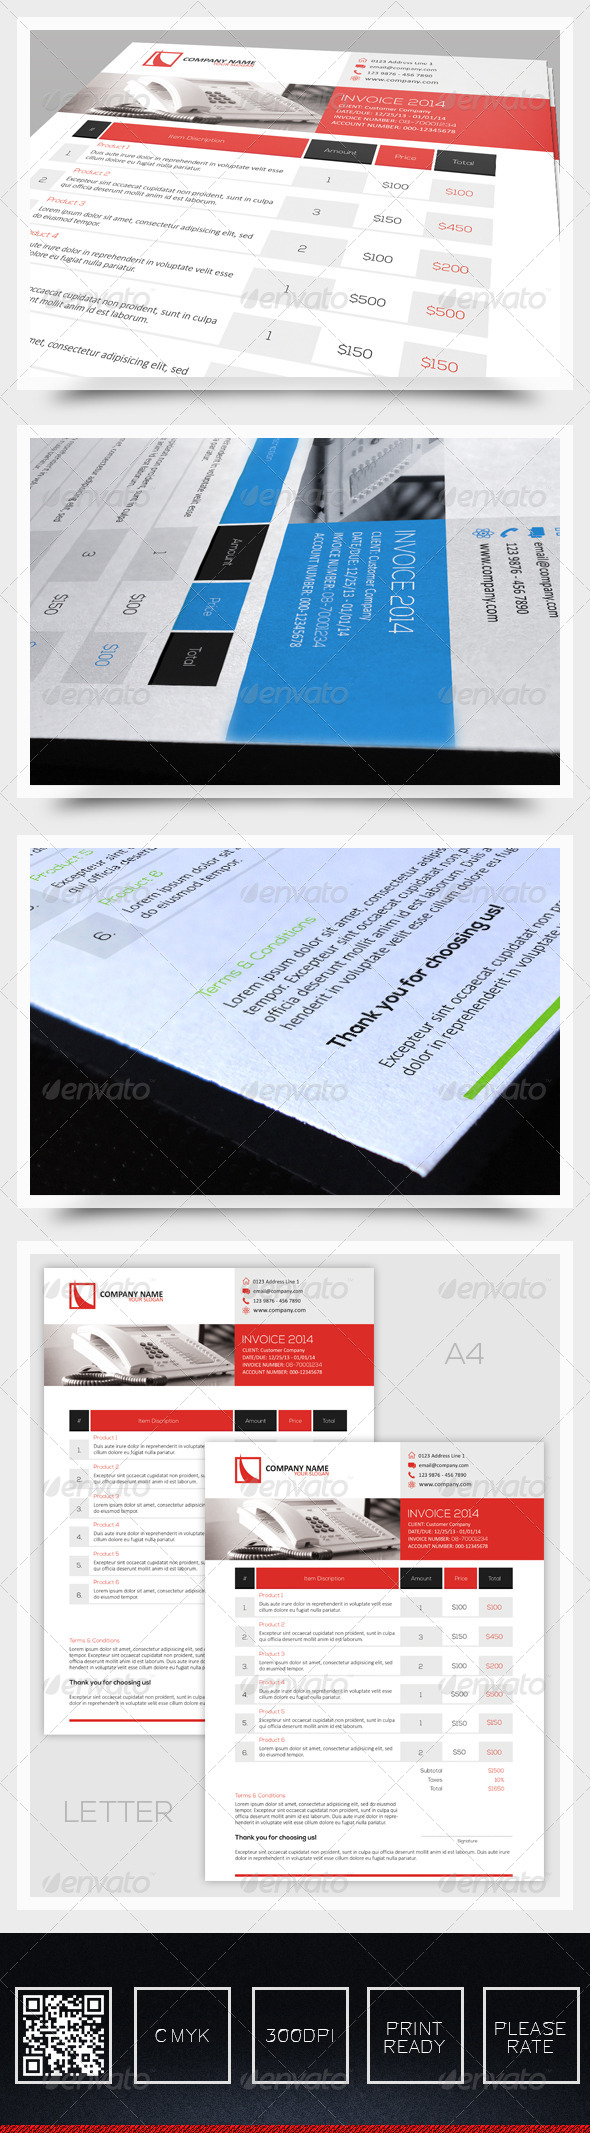 Invoice Vol1 - Proposals & Invoices Stationery